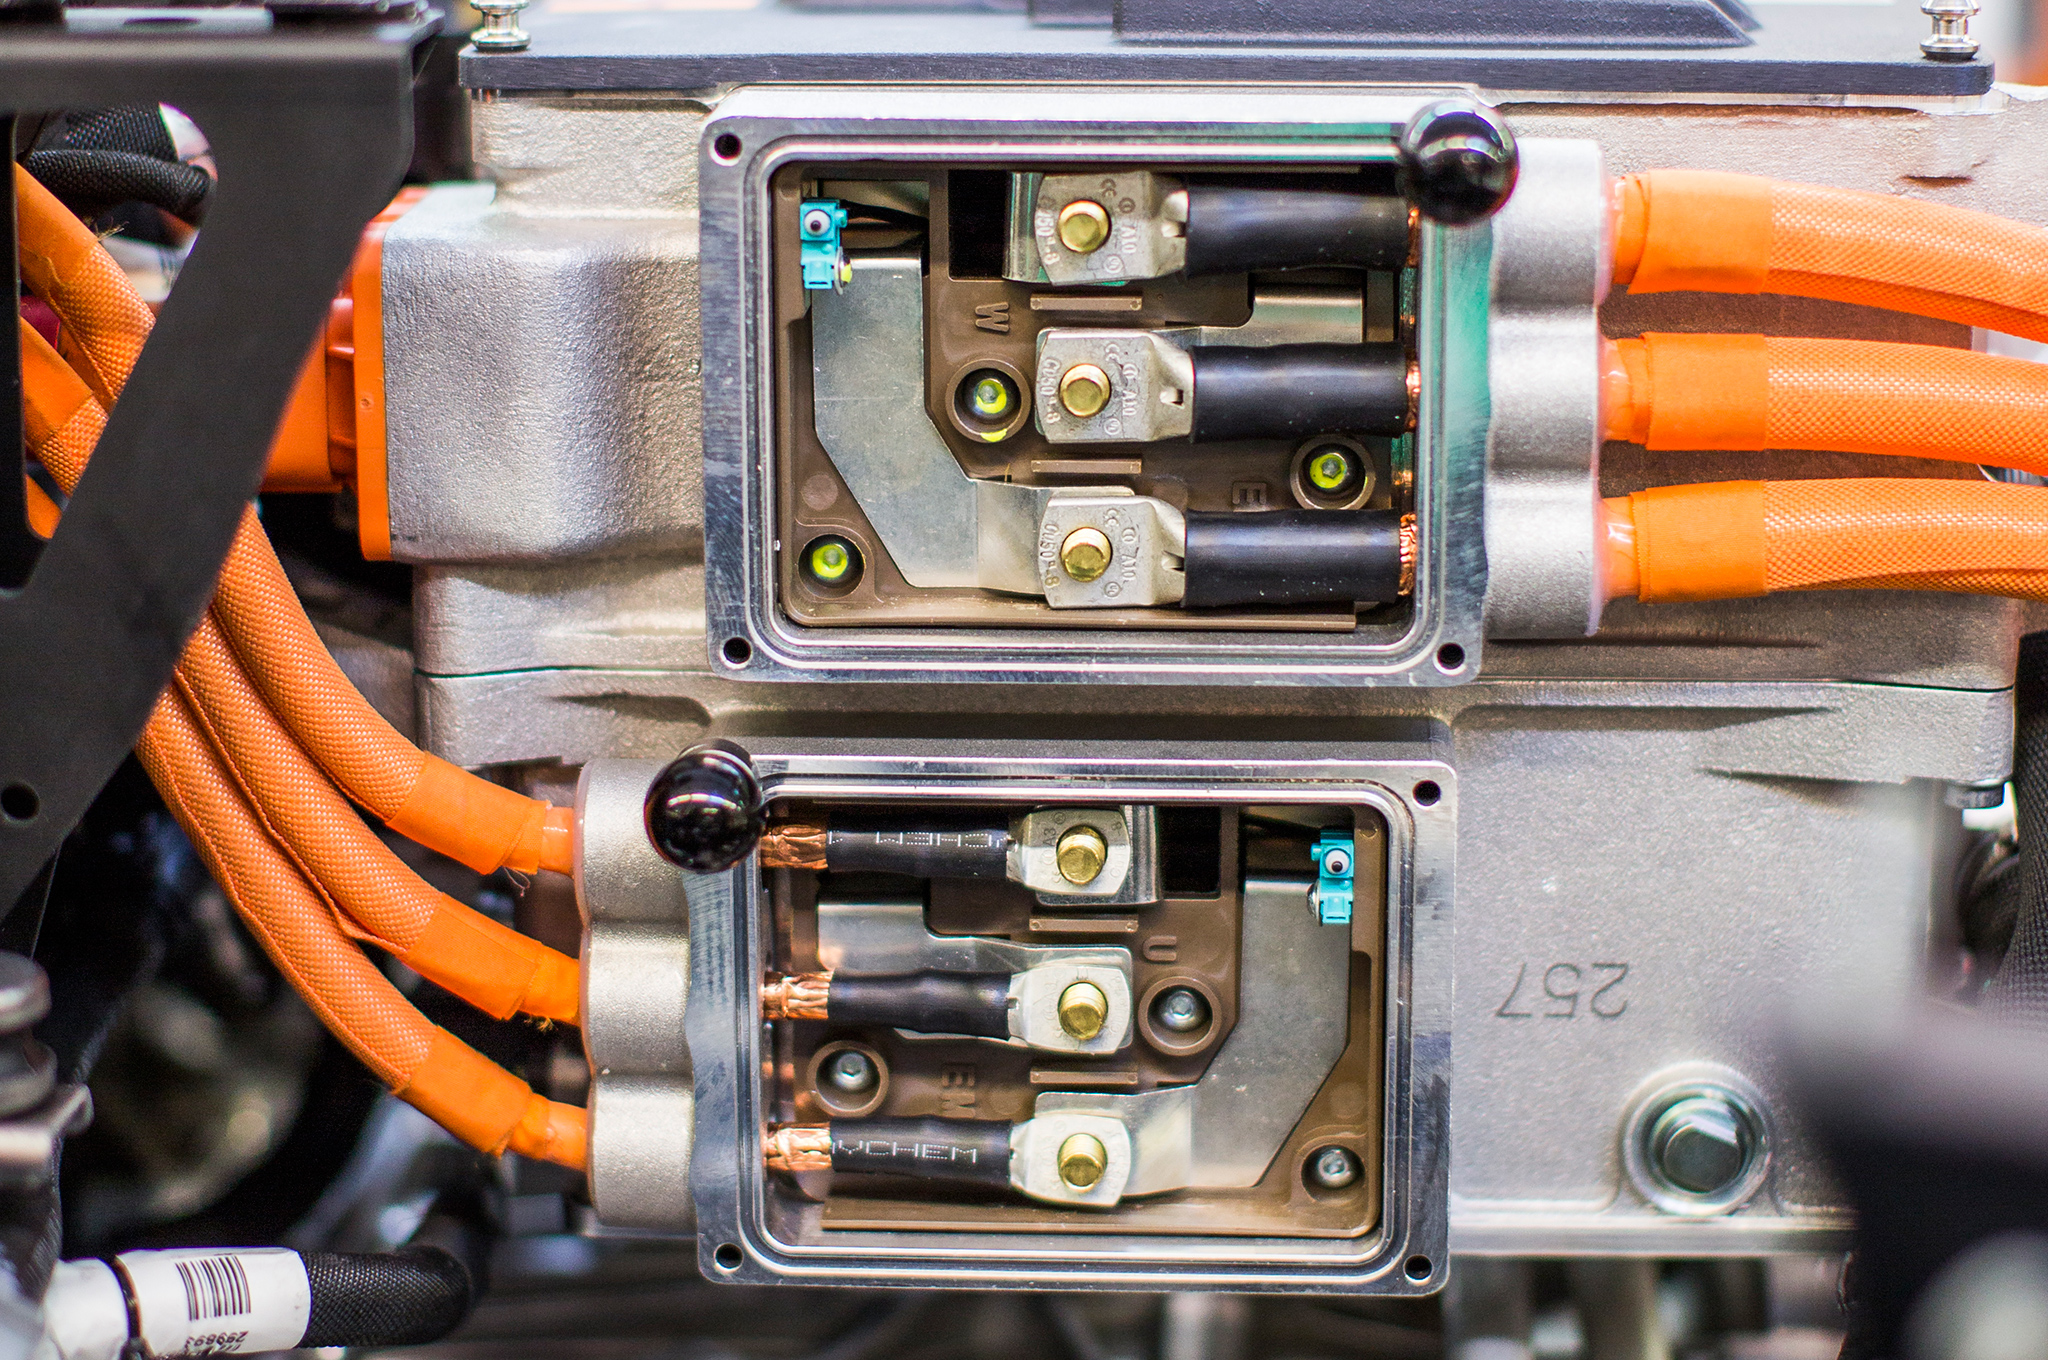 And here are the electric inverters, which reside, somewhat inelegantly, on top of the dual-clutch transmission.